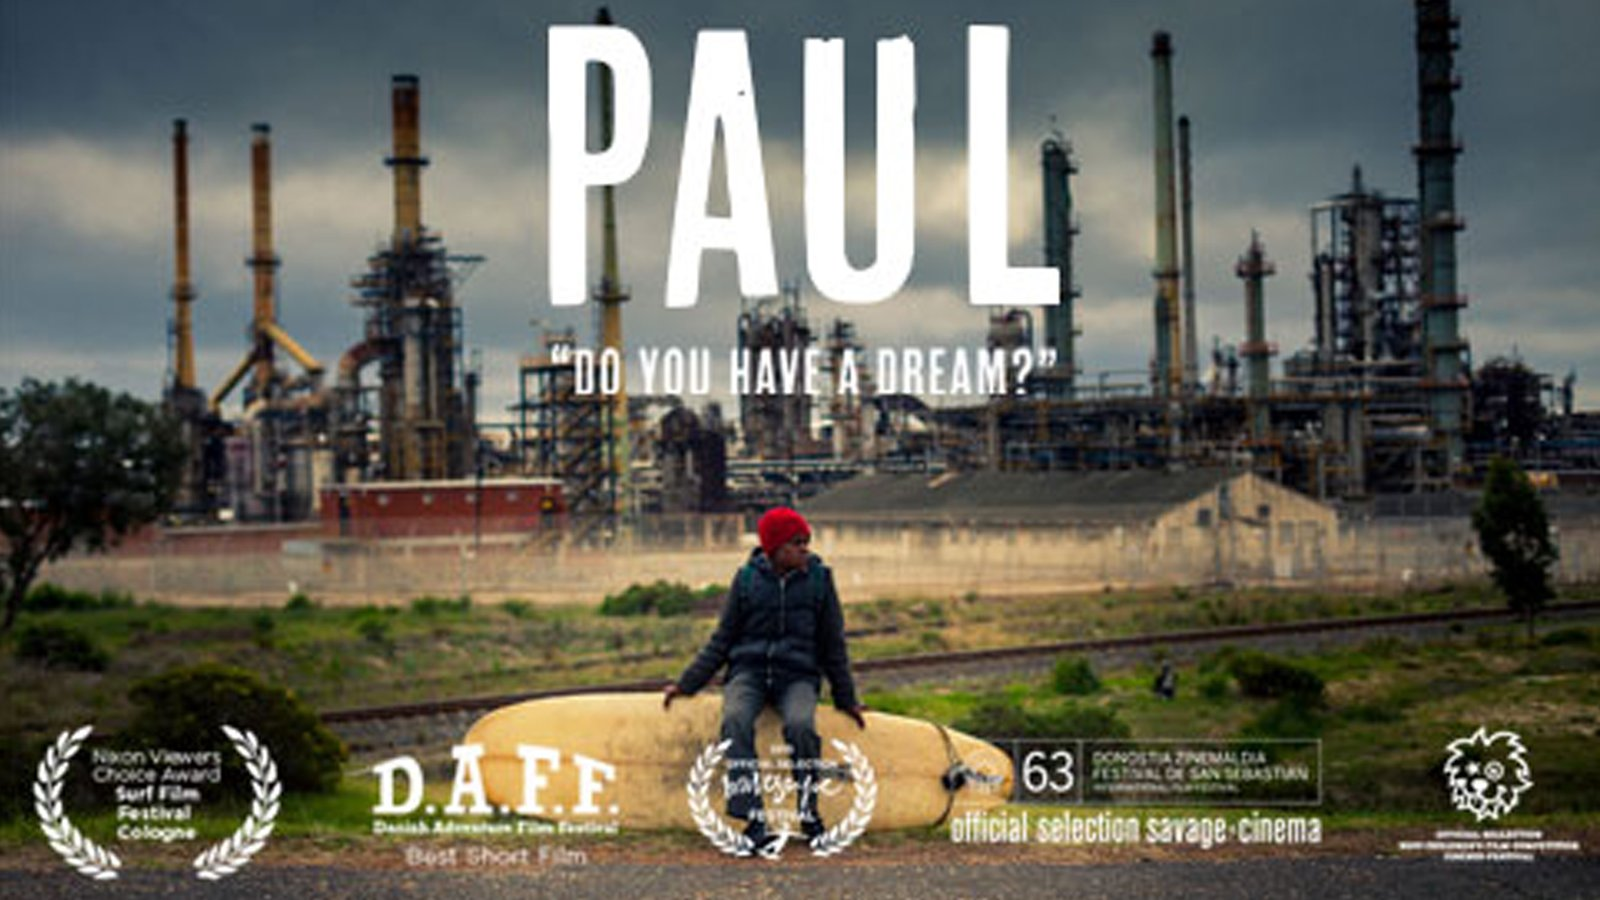 Paul - A Young South African Boy Dreams of Being a Surfer